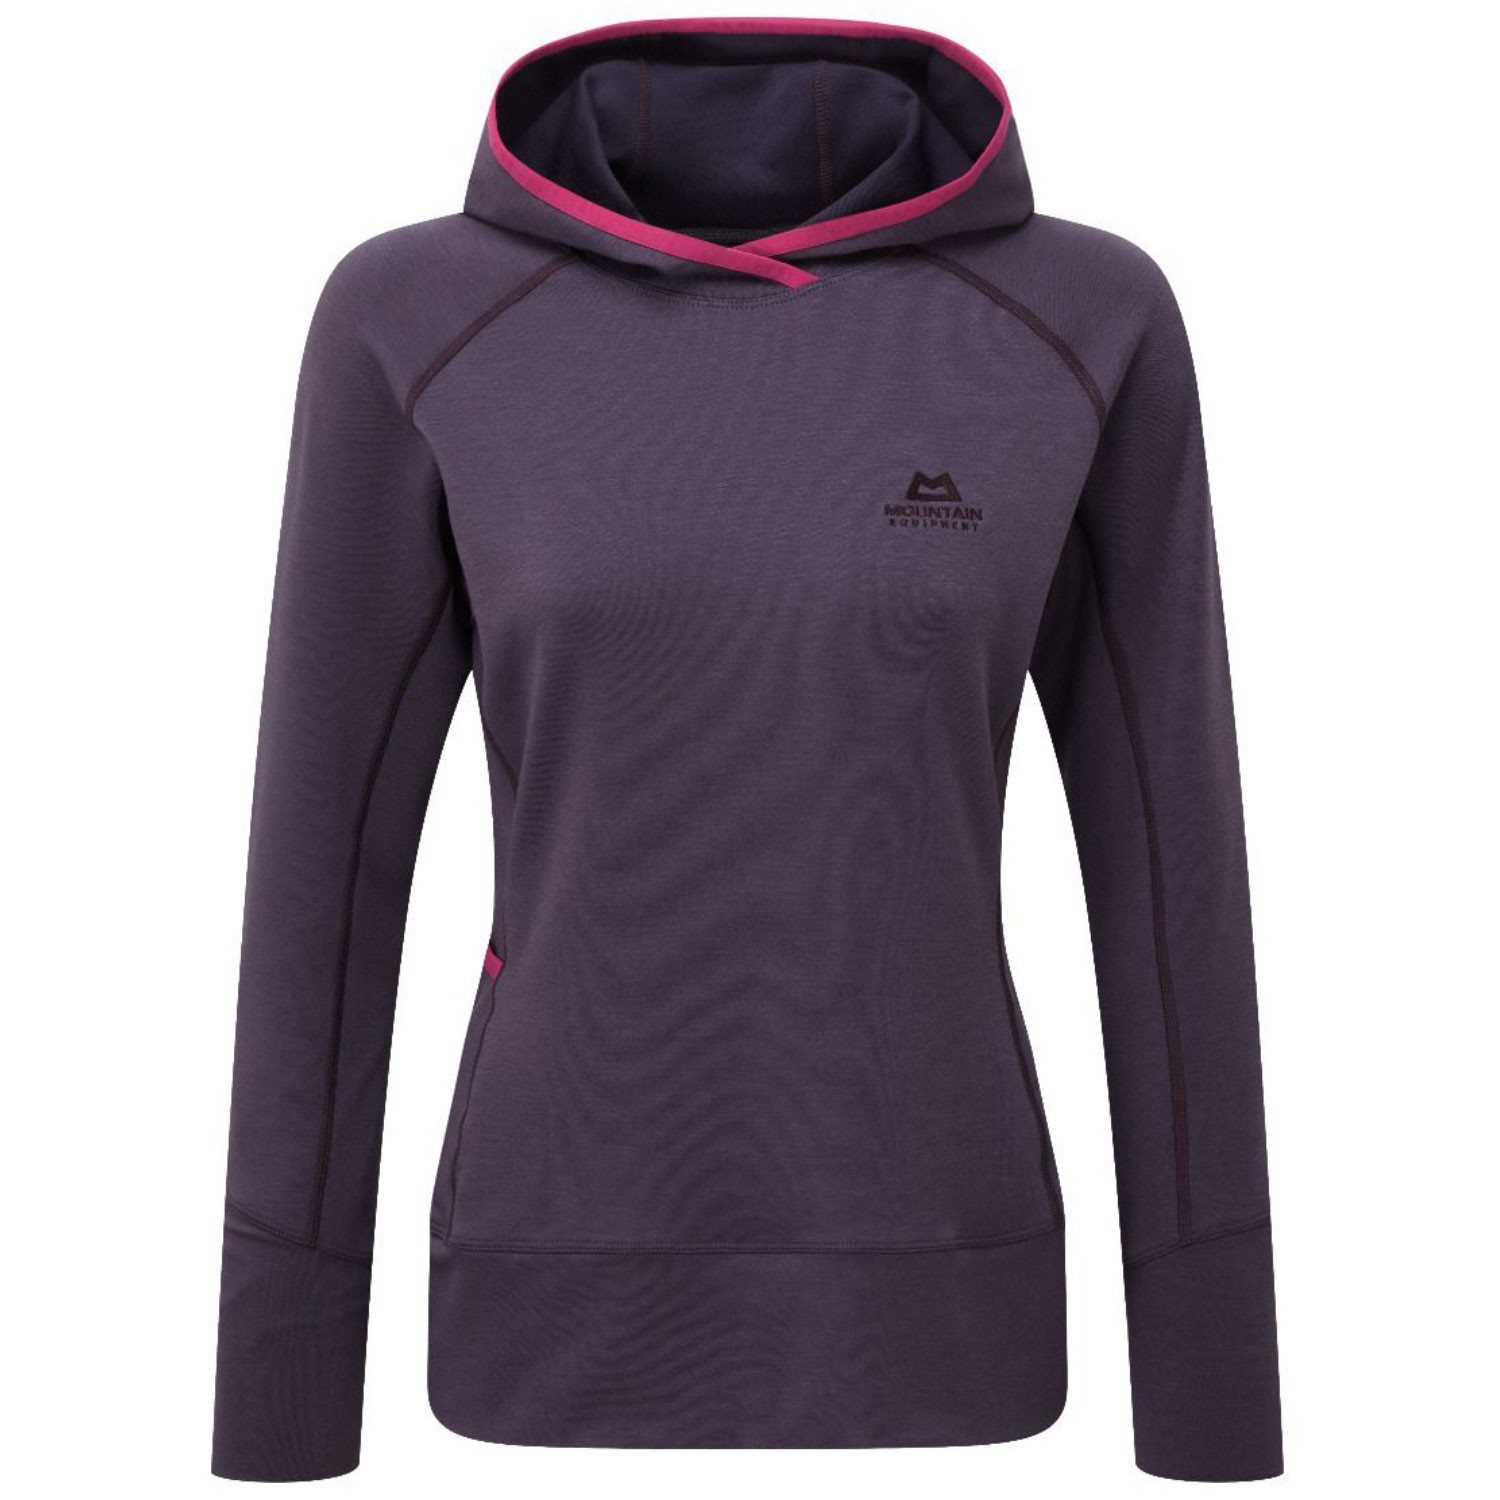 Mountain Equipment Women's Cobra Hoody - Nightshade